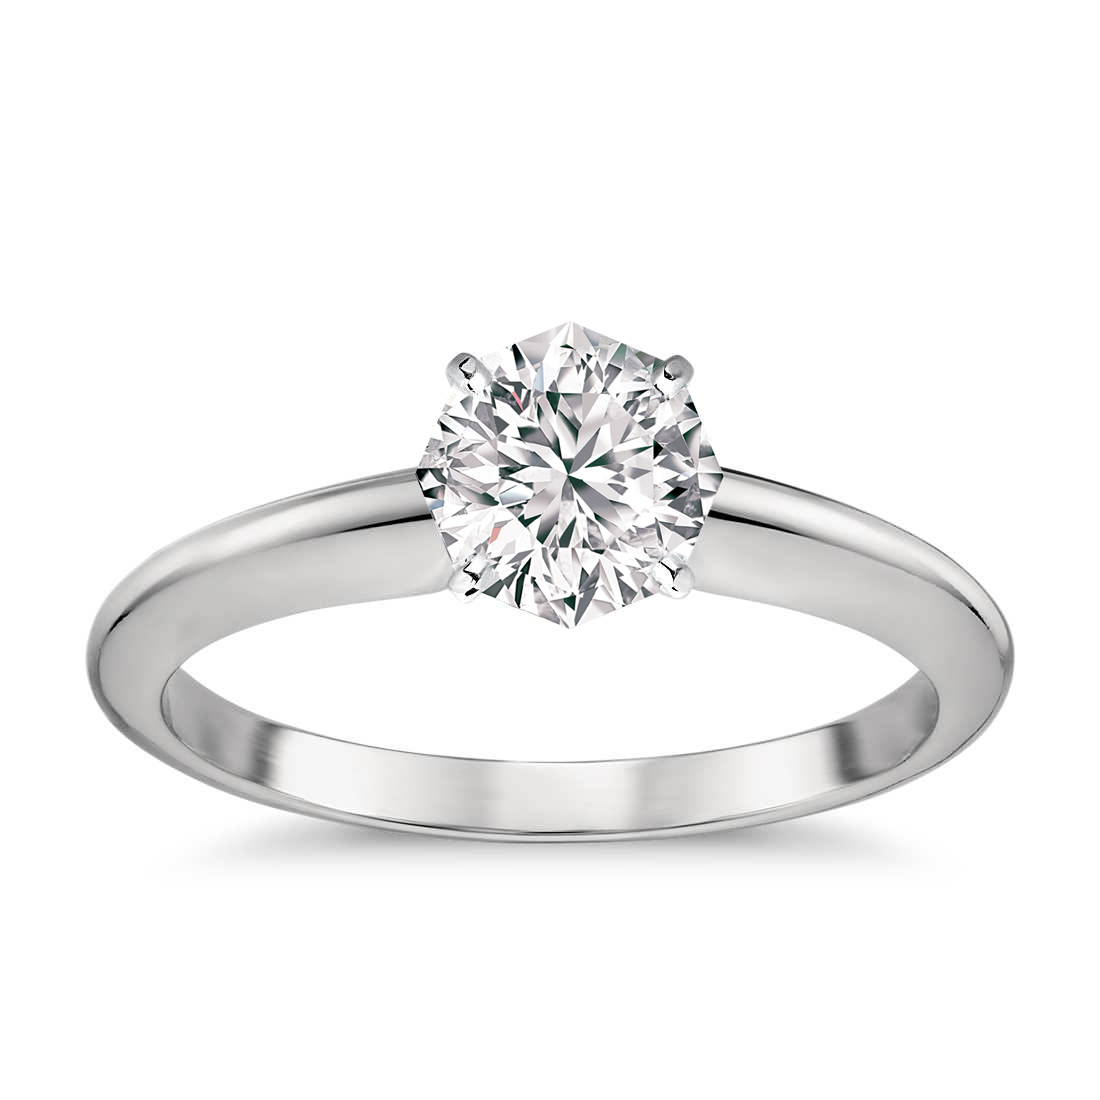 88-cut-knife-edge-solitaire-ring.jpg